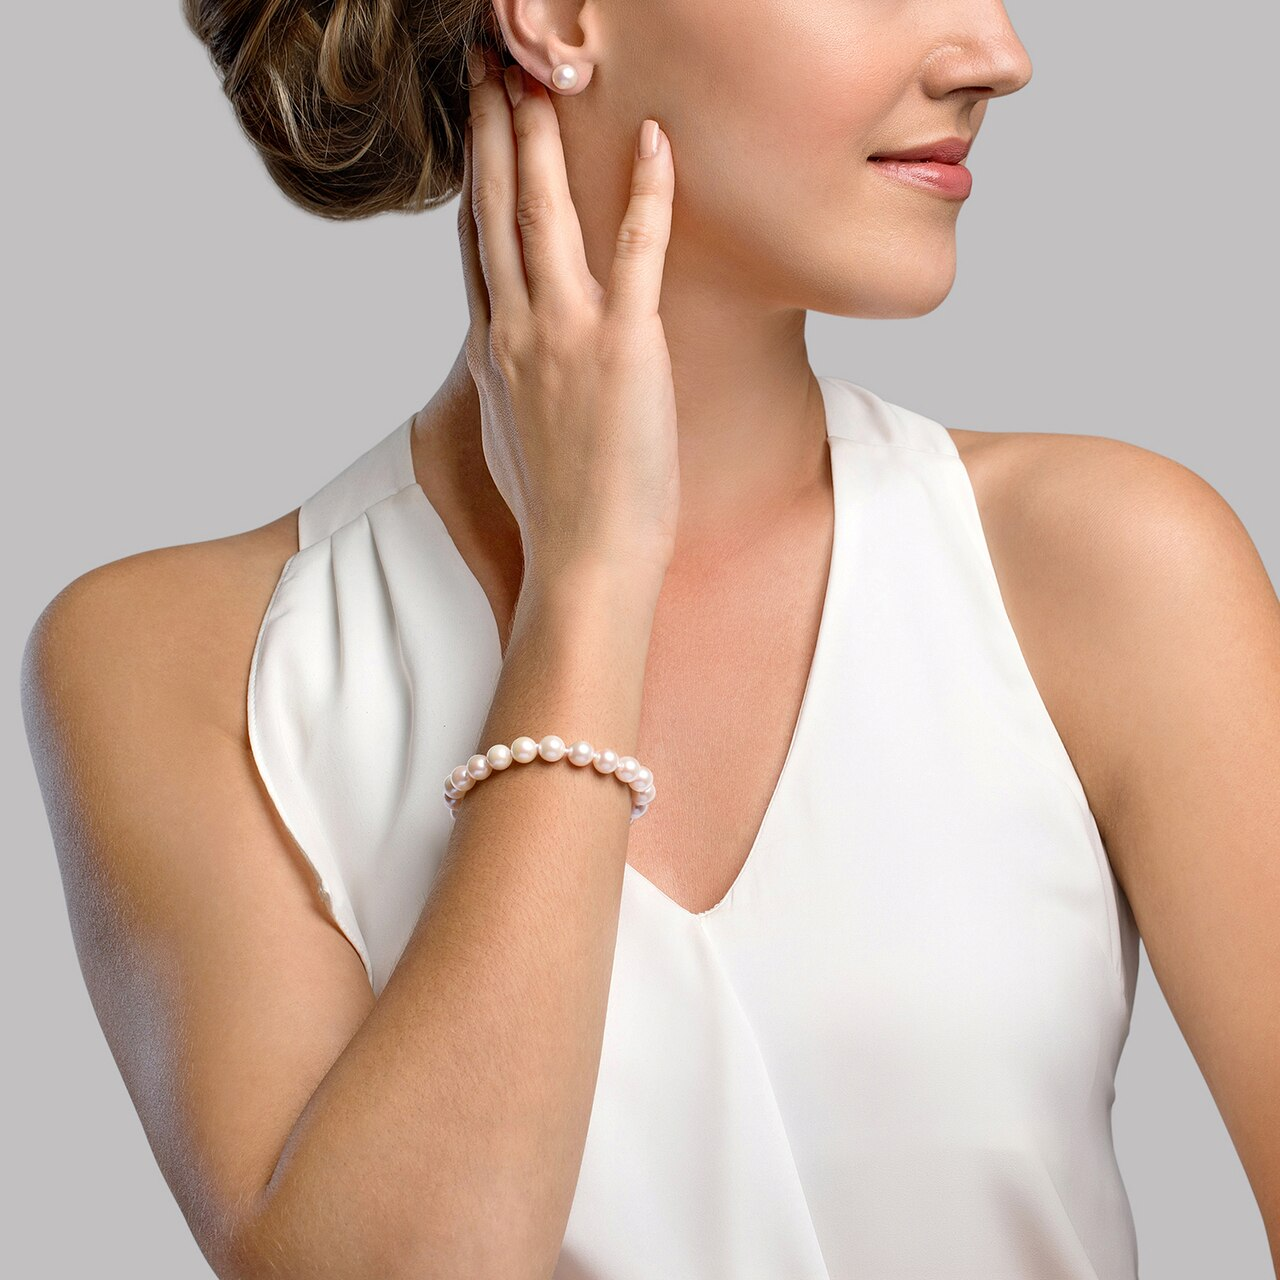 This elegant bracelet features 9.0-9.5mm Japanese Akoya pearls, handpicked for their luminous luster